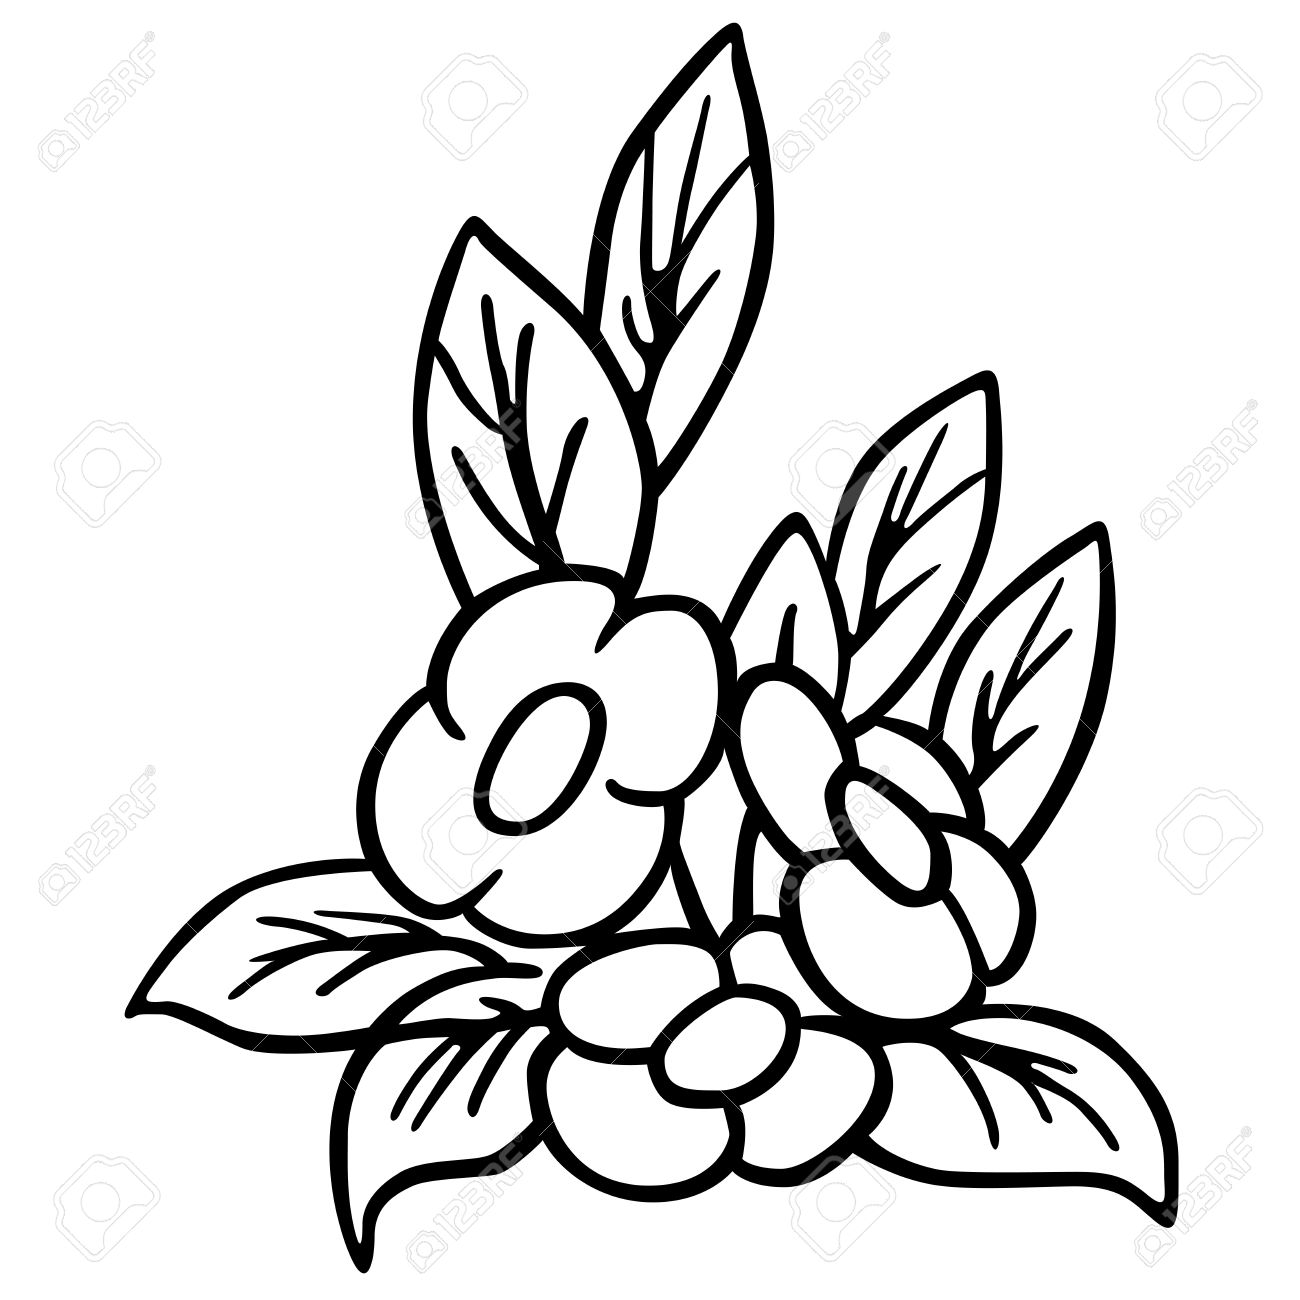 Flower black and white cartoon illustration royalty free cliparts flower black and white cartoon illustration stock vector 12483339 mightylinksfo